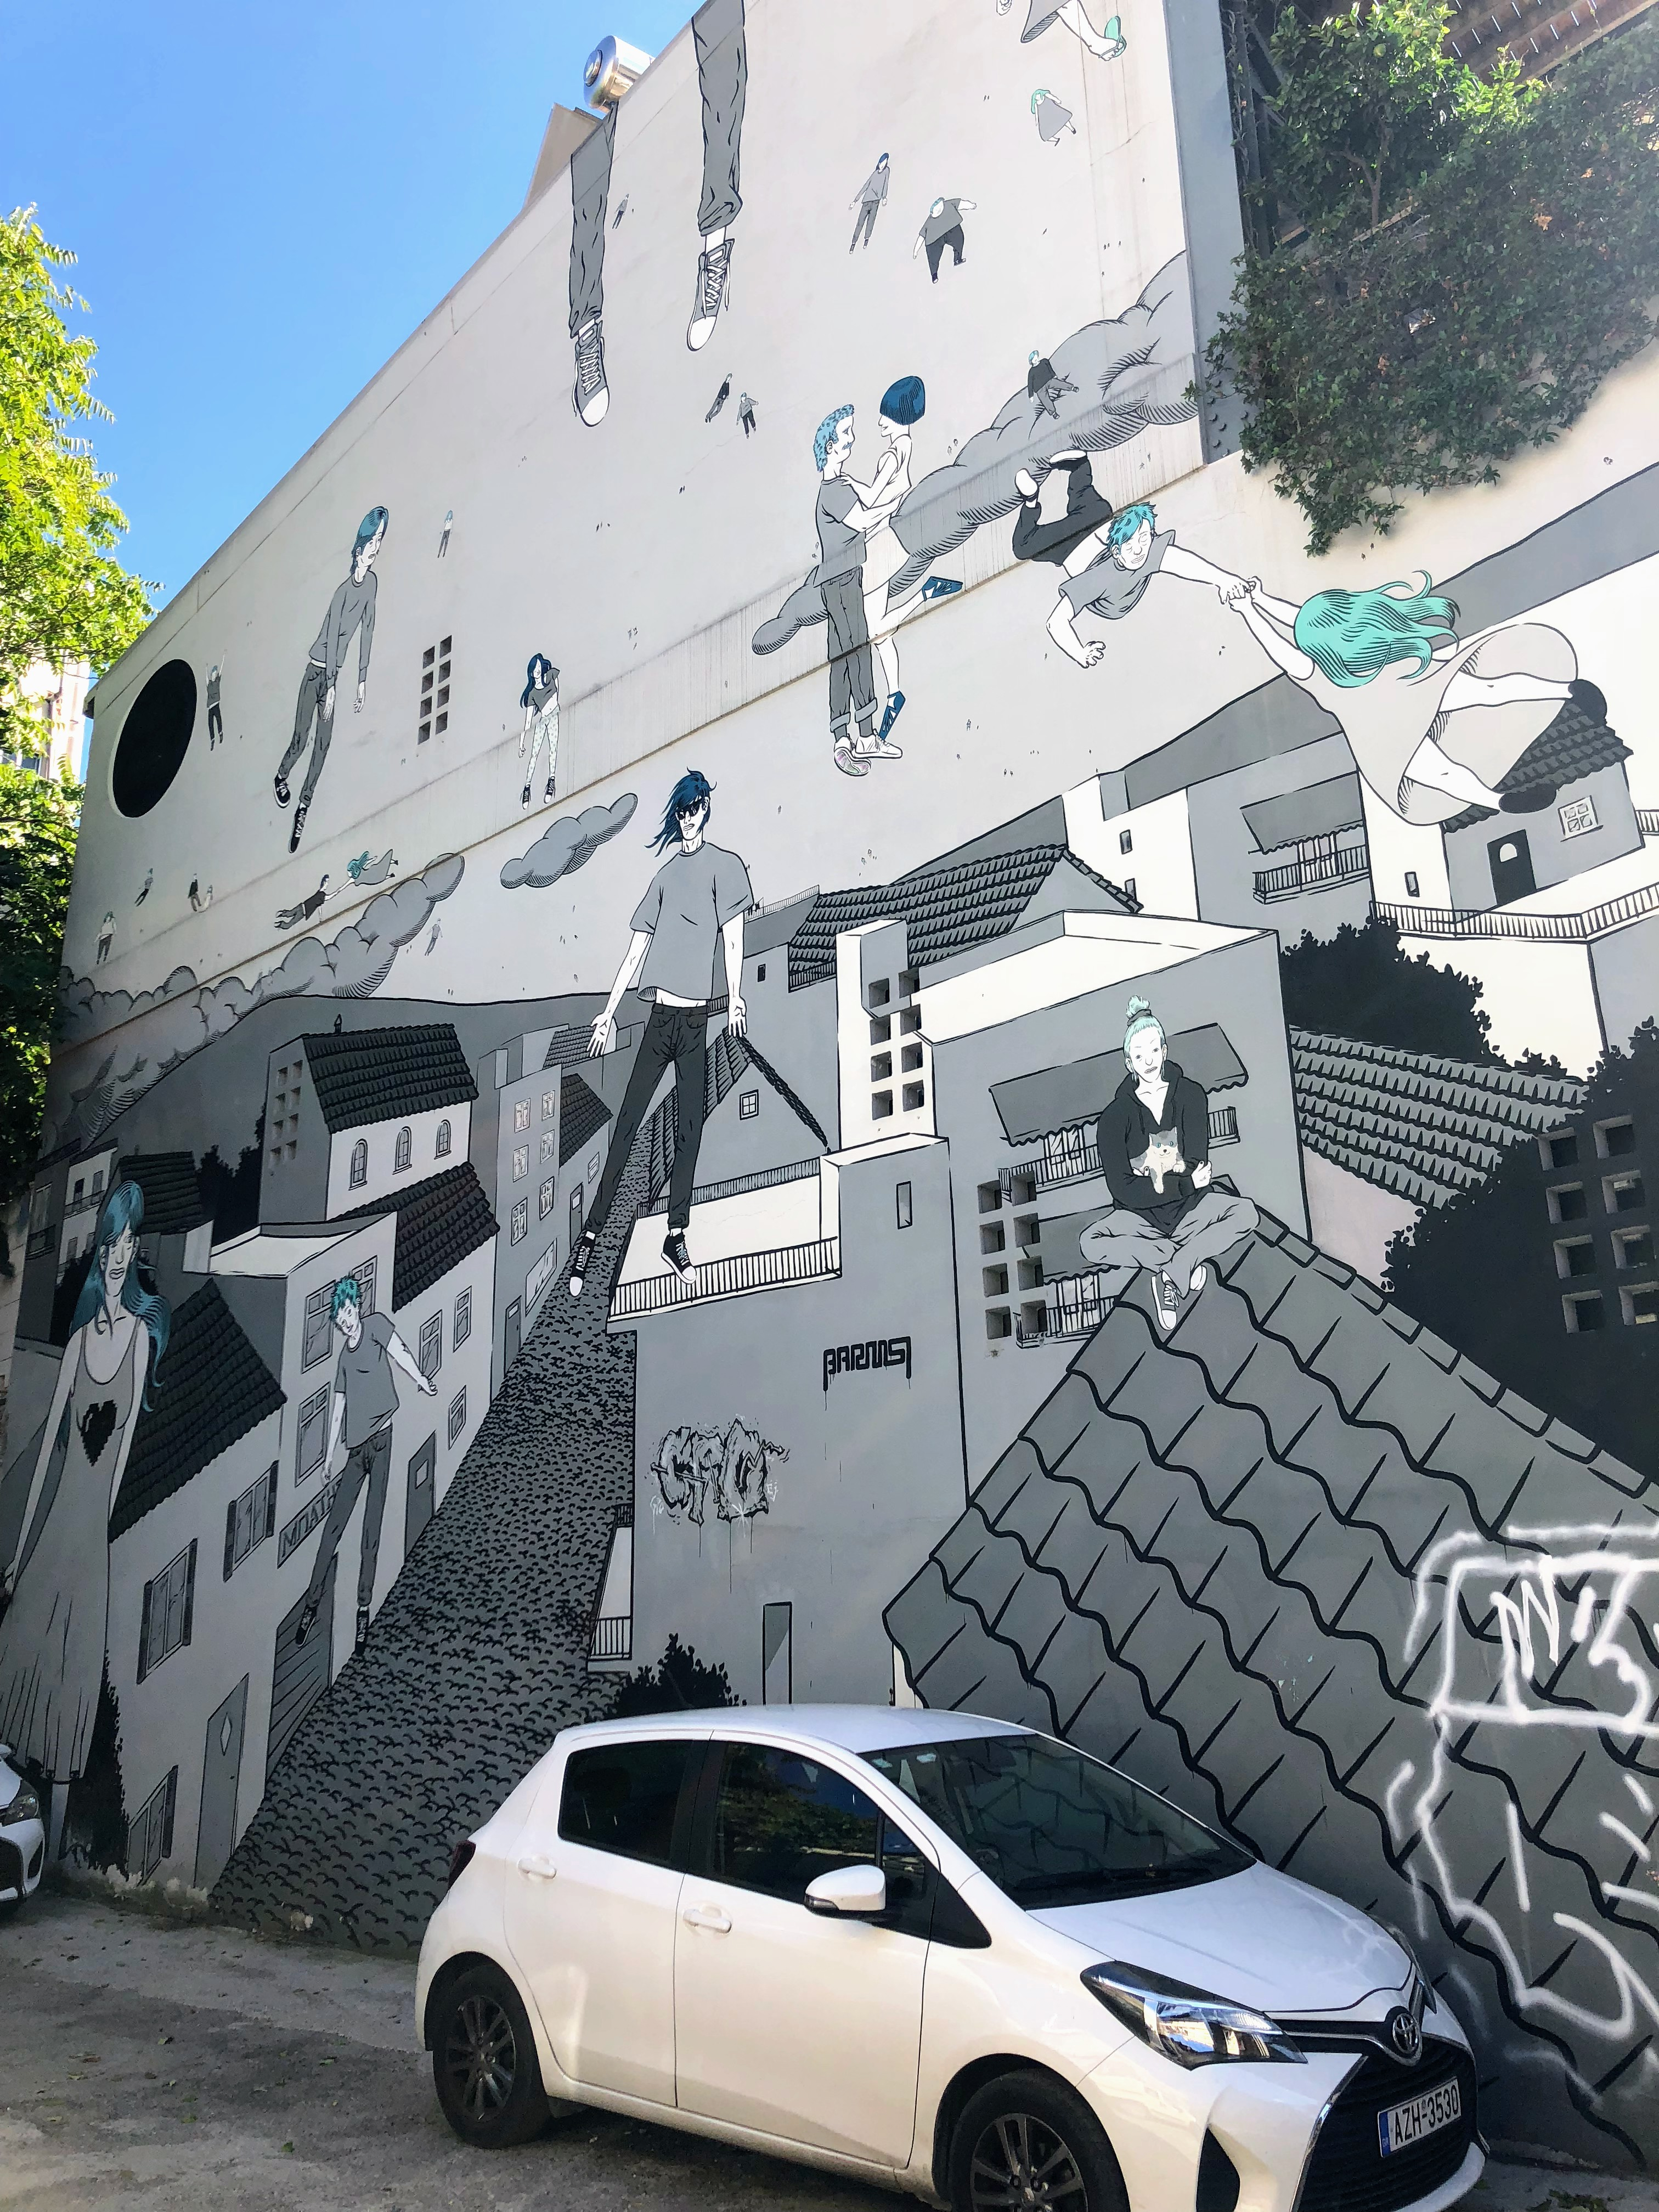 Streets, Shops and Street Art Psyri - Athens, Greece, Europe - Honeymoon Part 1 - Athens is a beautiful capital city rich with history. With it's impressive Acropolis and quaint pedestrian streets, we headed here for our Honeymoon Part 1! Veritru Travel Blog